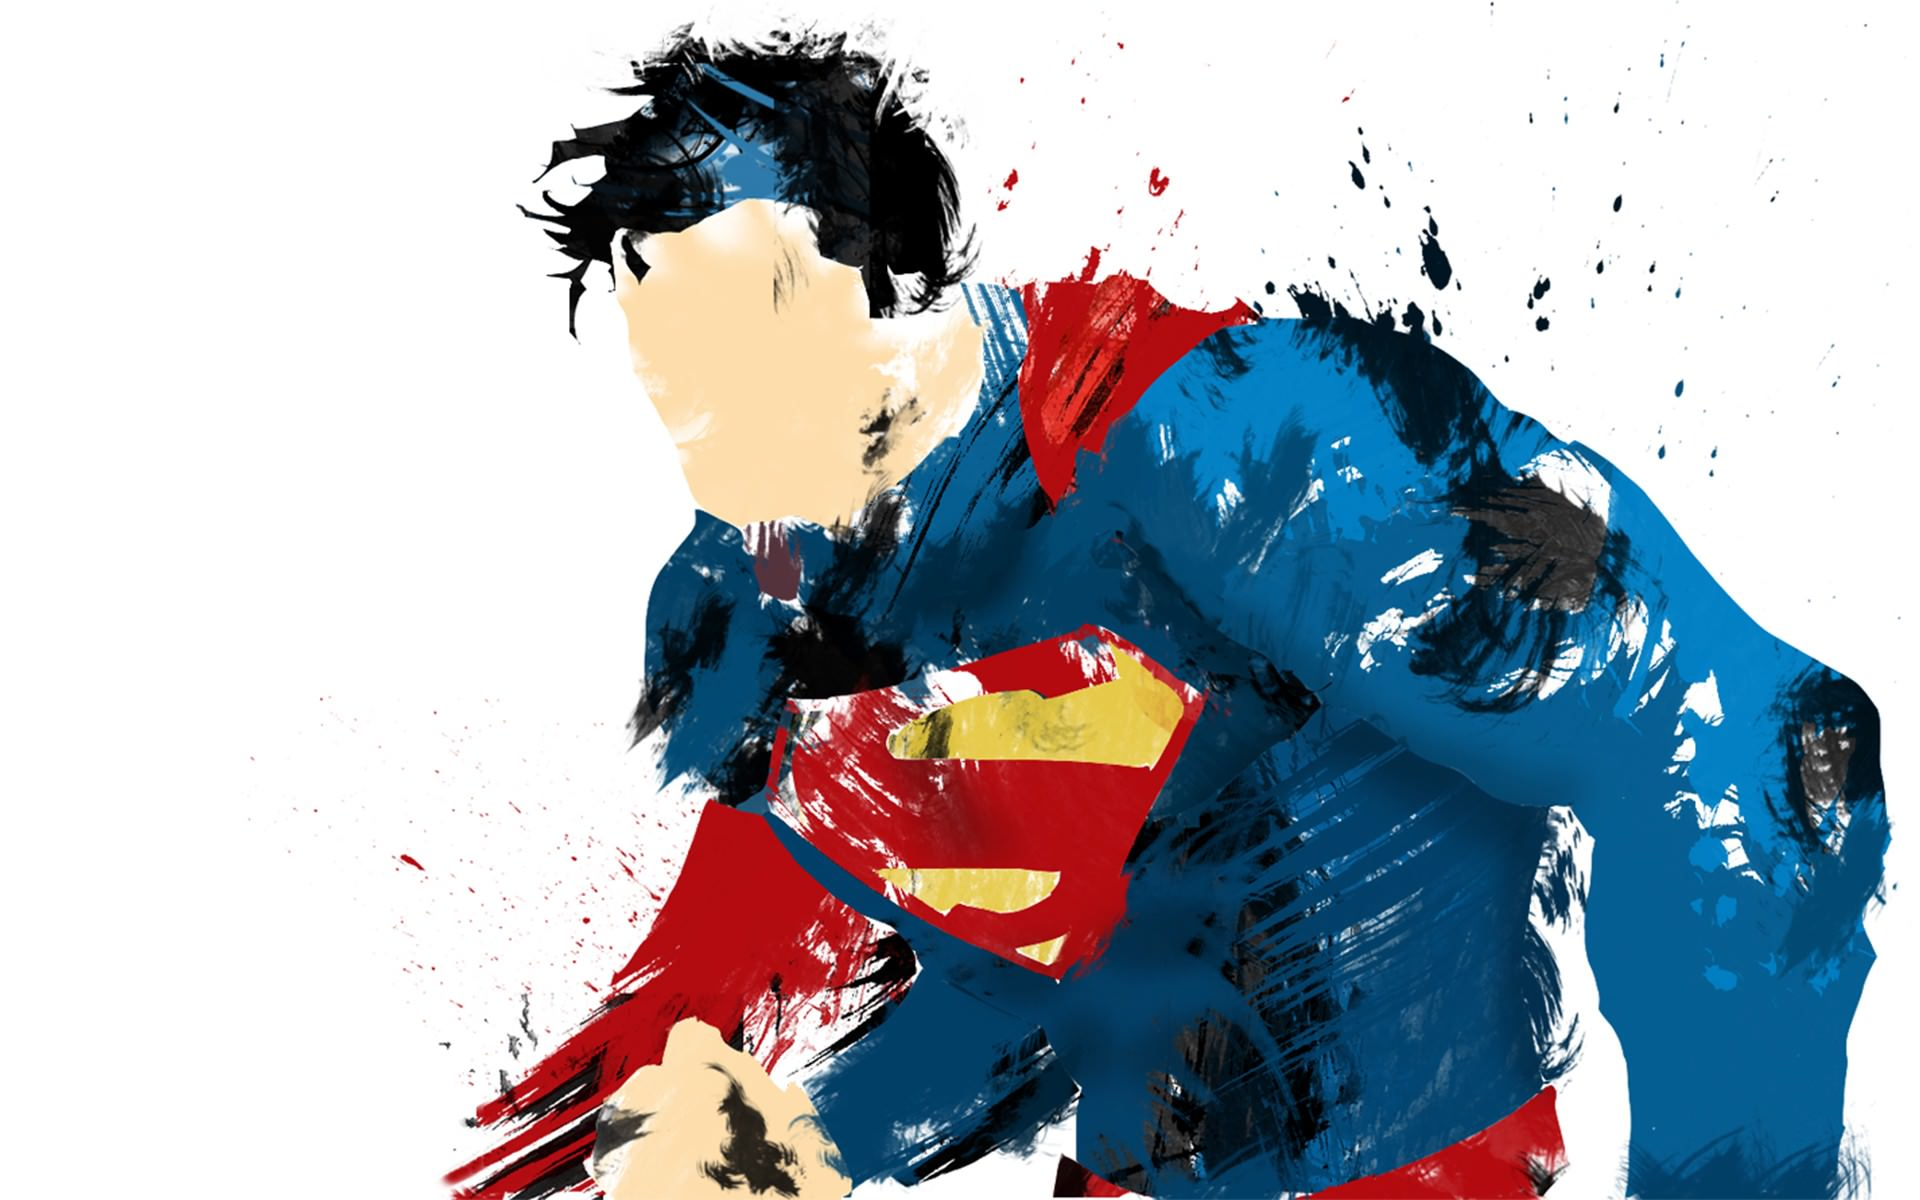 Superman Man of Steel Painted Wallpaper   DigitalArtio 1920x1200